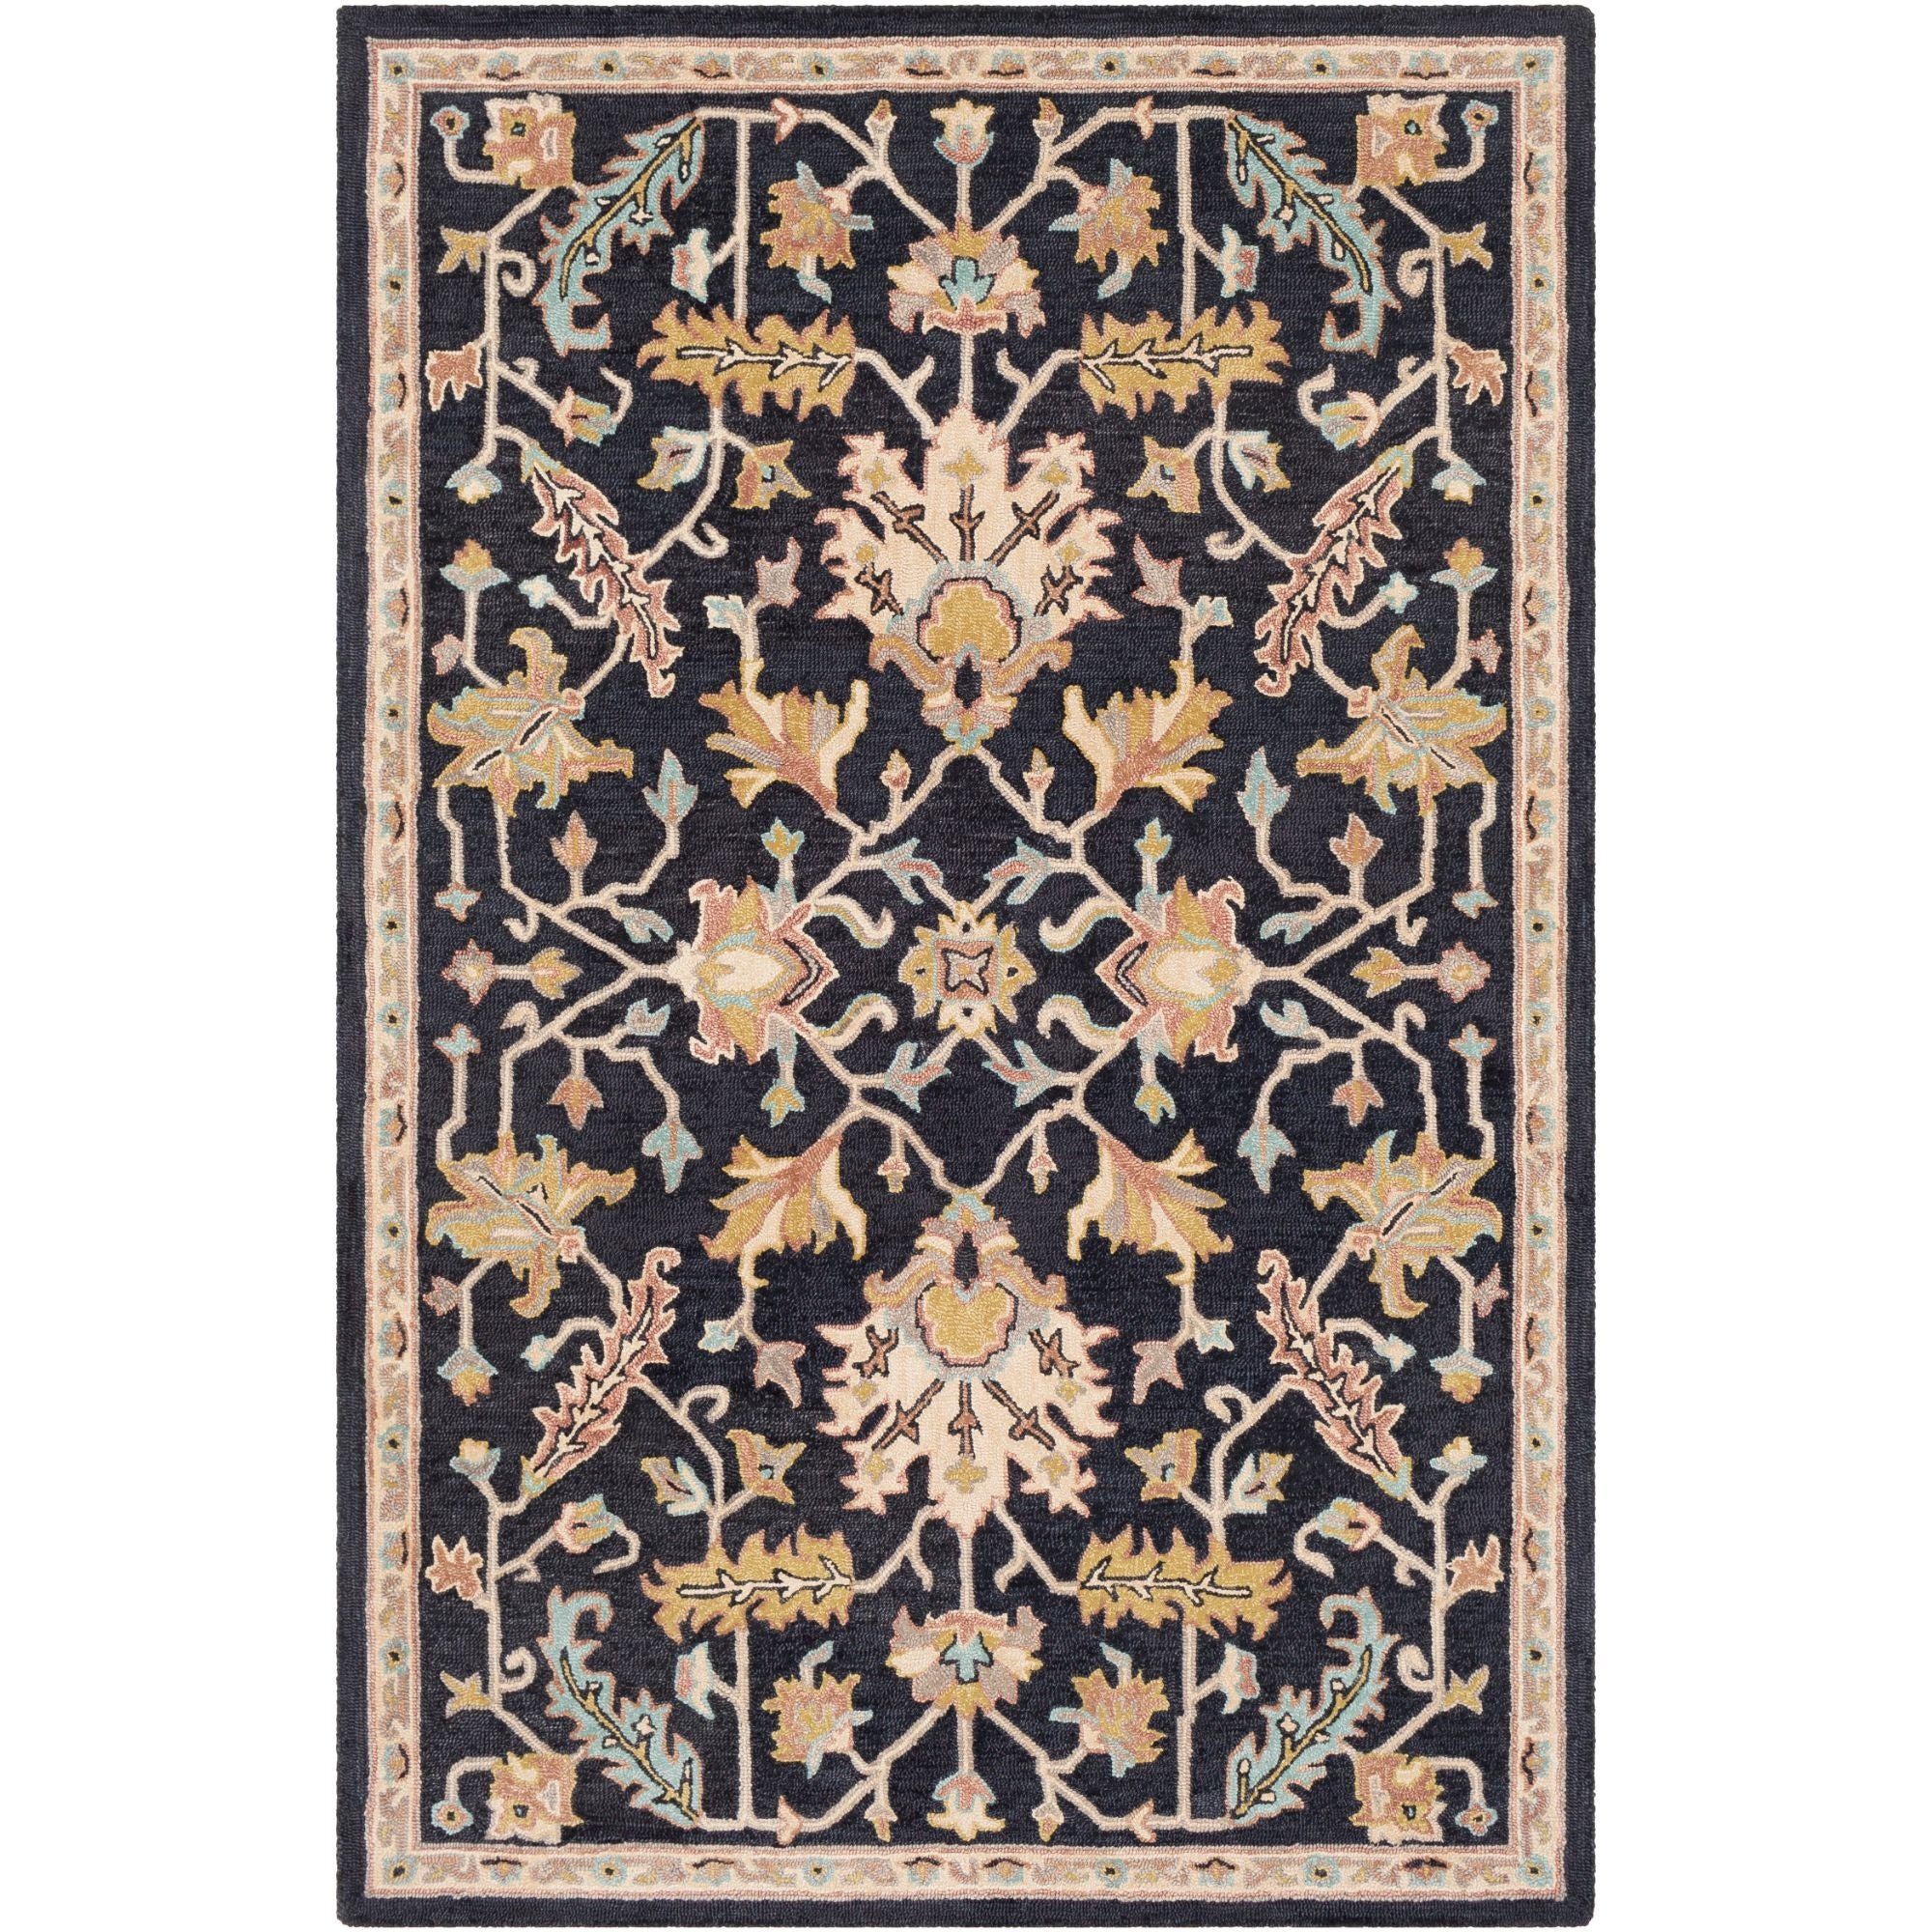 2 X 3 Oriental Black And Beige Rectangular Area Throw Rug N A